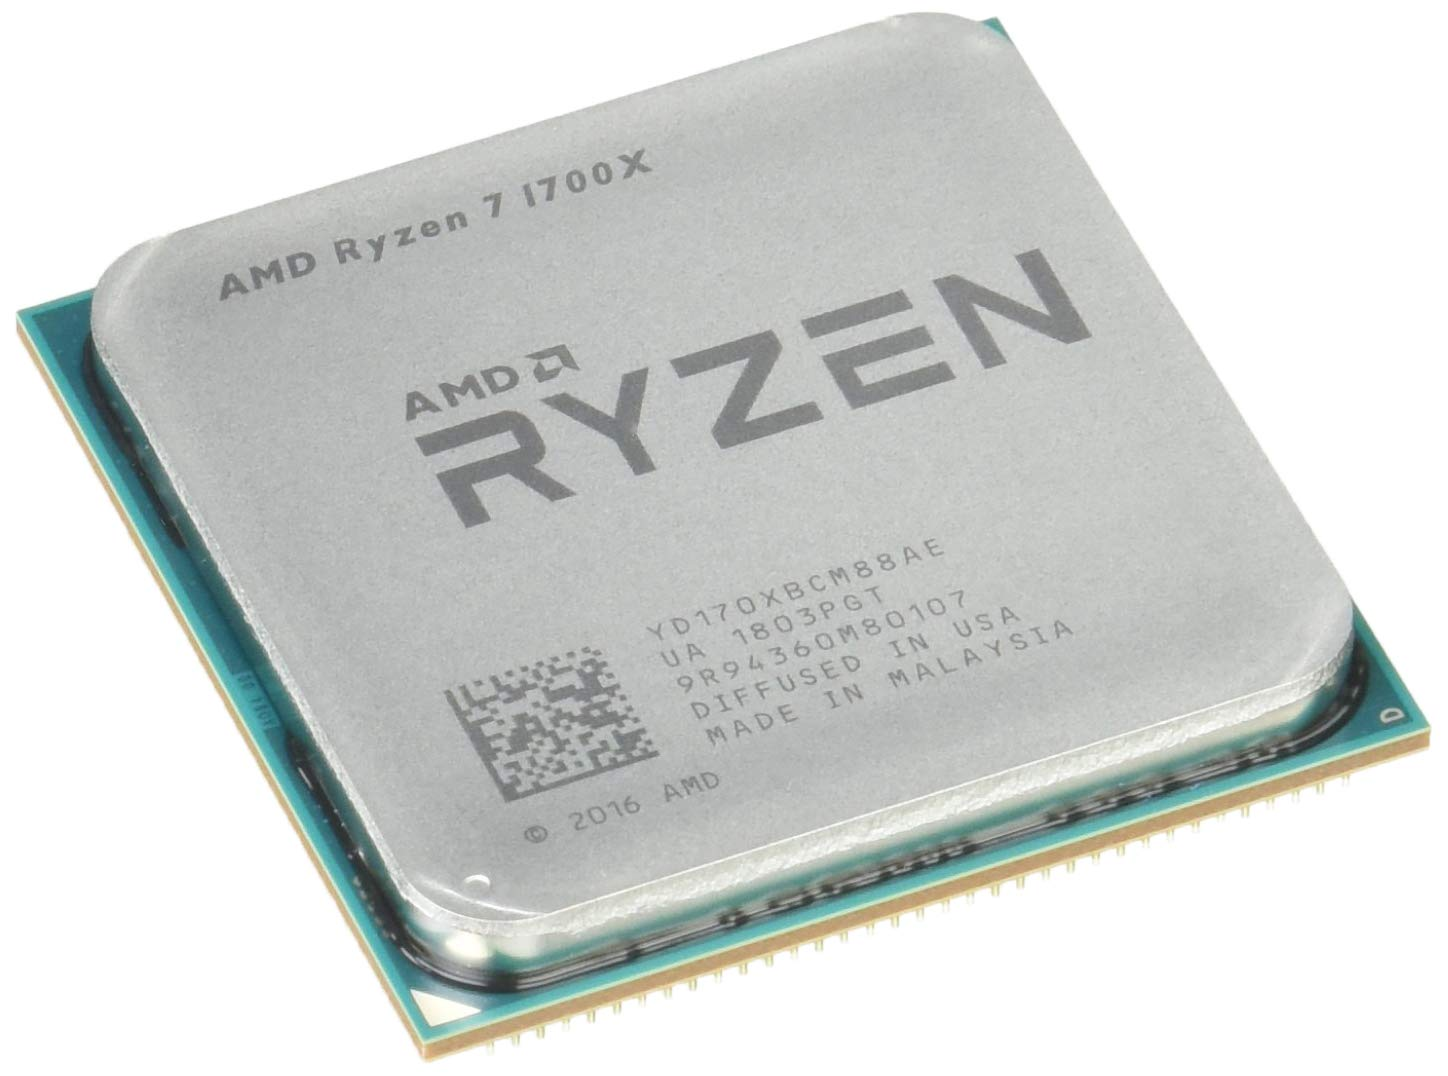 AMD-Ryzen-Processor-with-Wraith-Stealth-Cooler